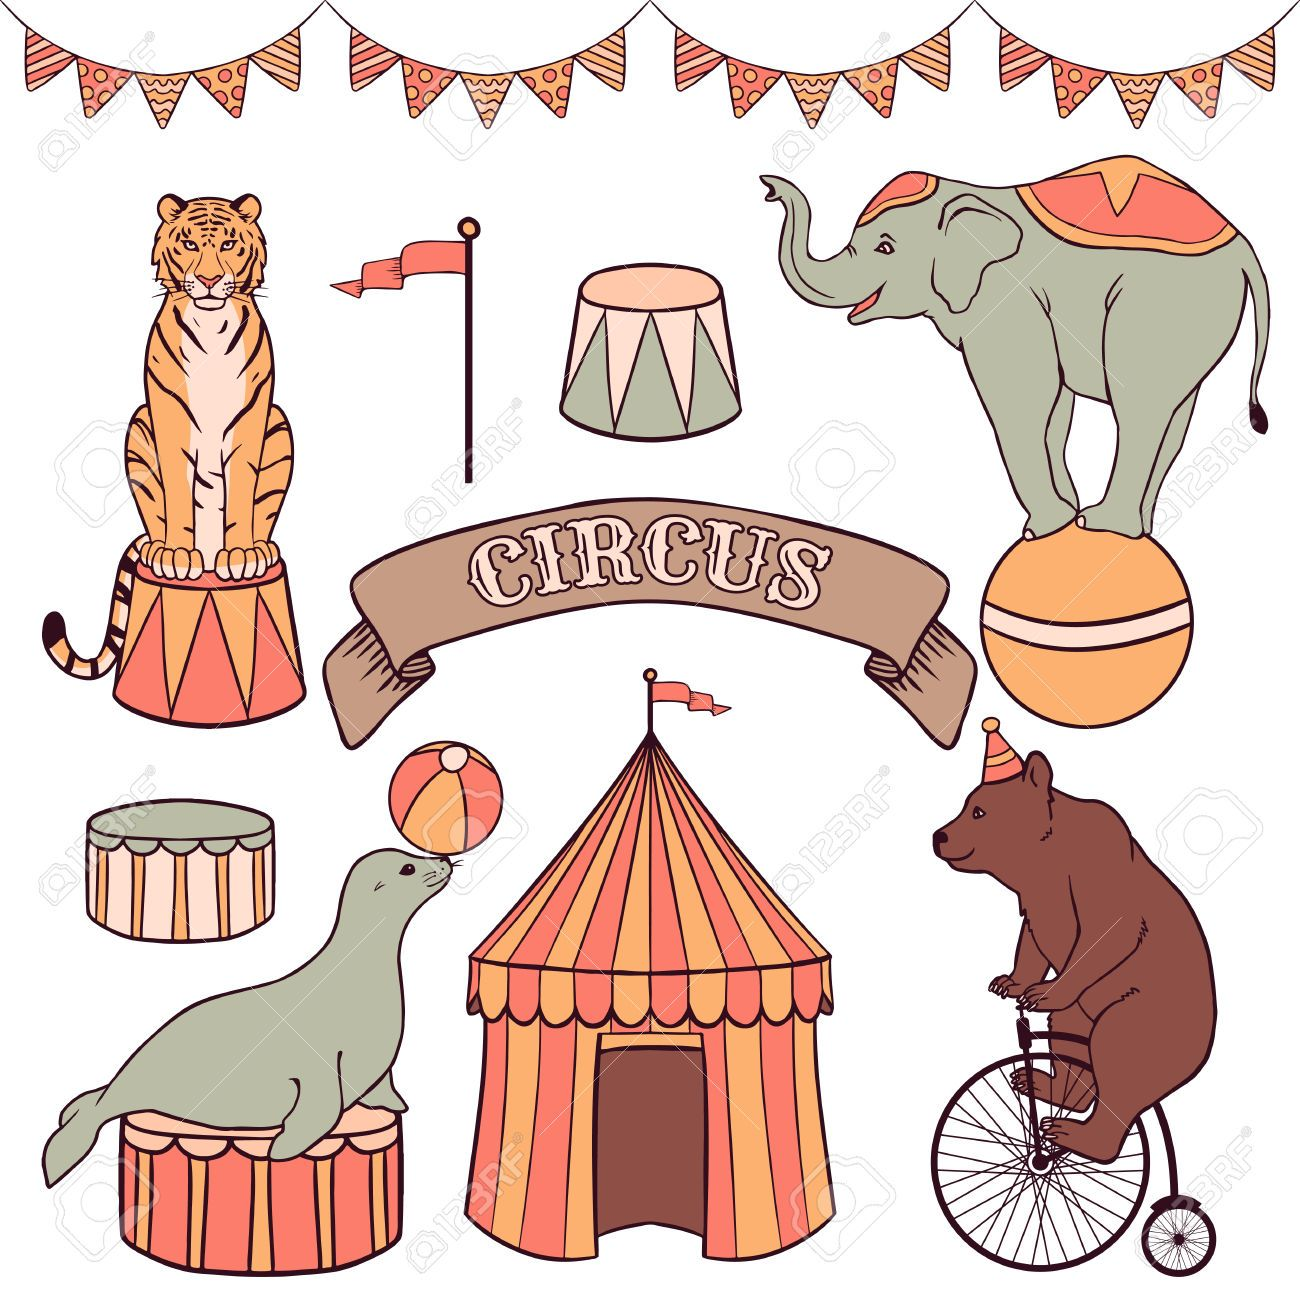 circus seal clipart free google search [ 1300 x 1300 Pixel ]